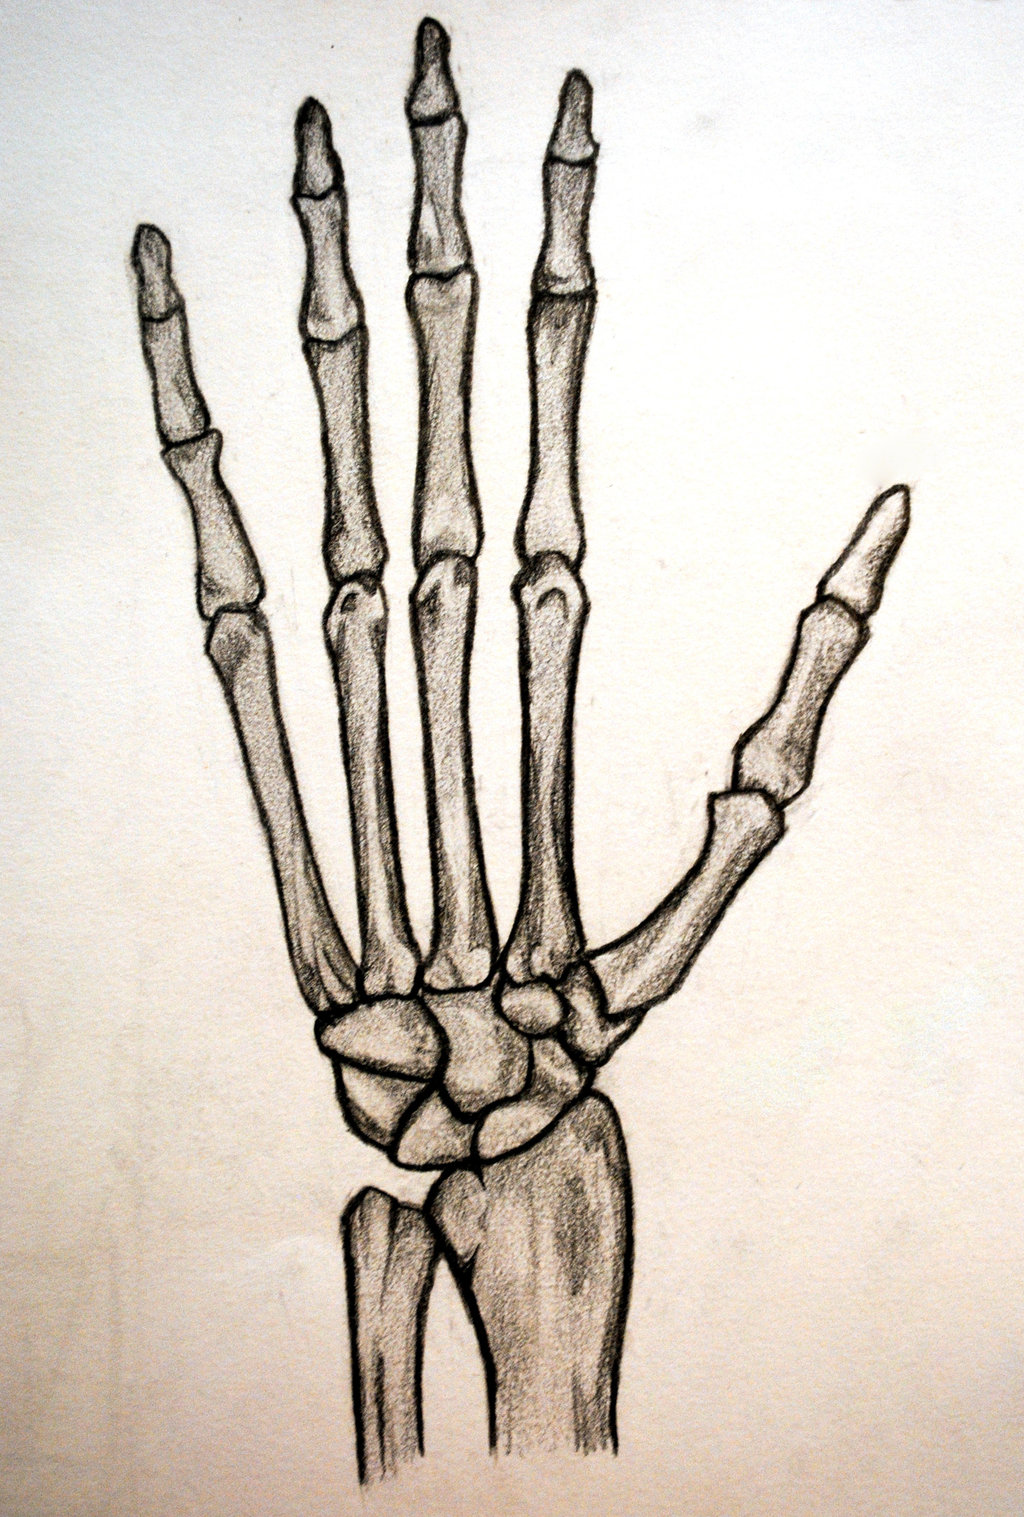 Drawn sleleton hand tumblr Skeleton Hand shinigamixandie by by